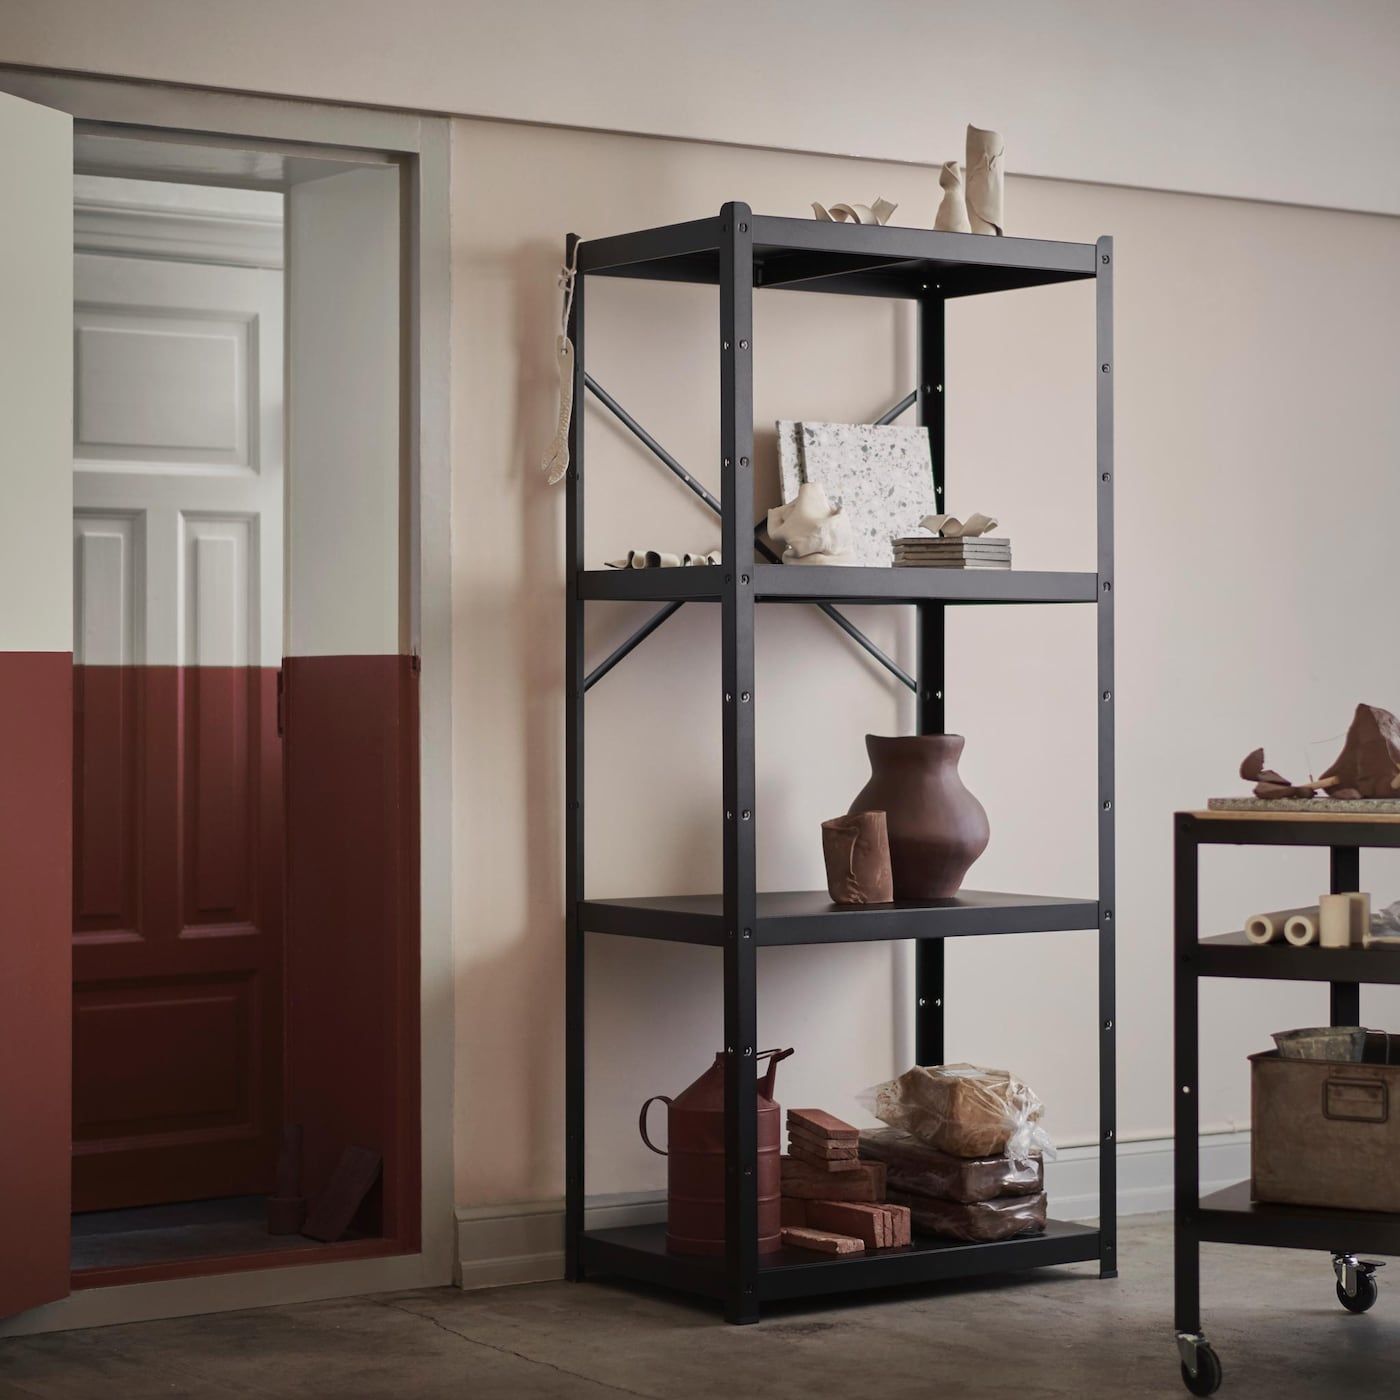 Made in black metal, the BROR series has a stylish and sturdy industrial design. The shelves, cabinet and trolley will keep things tidy in the garage, hobby area or anywhere in your home.